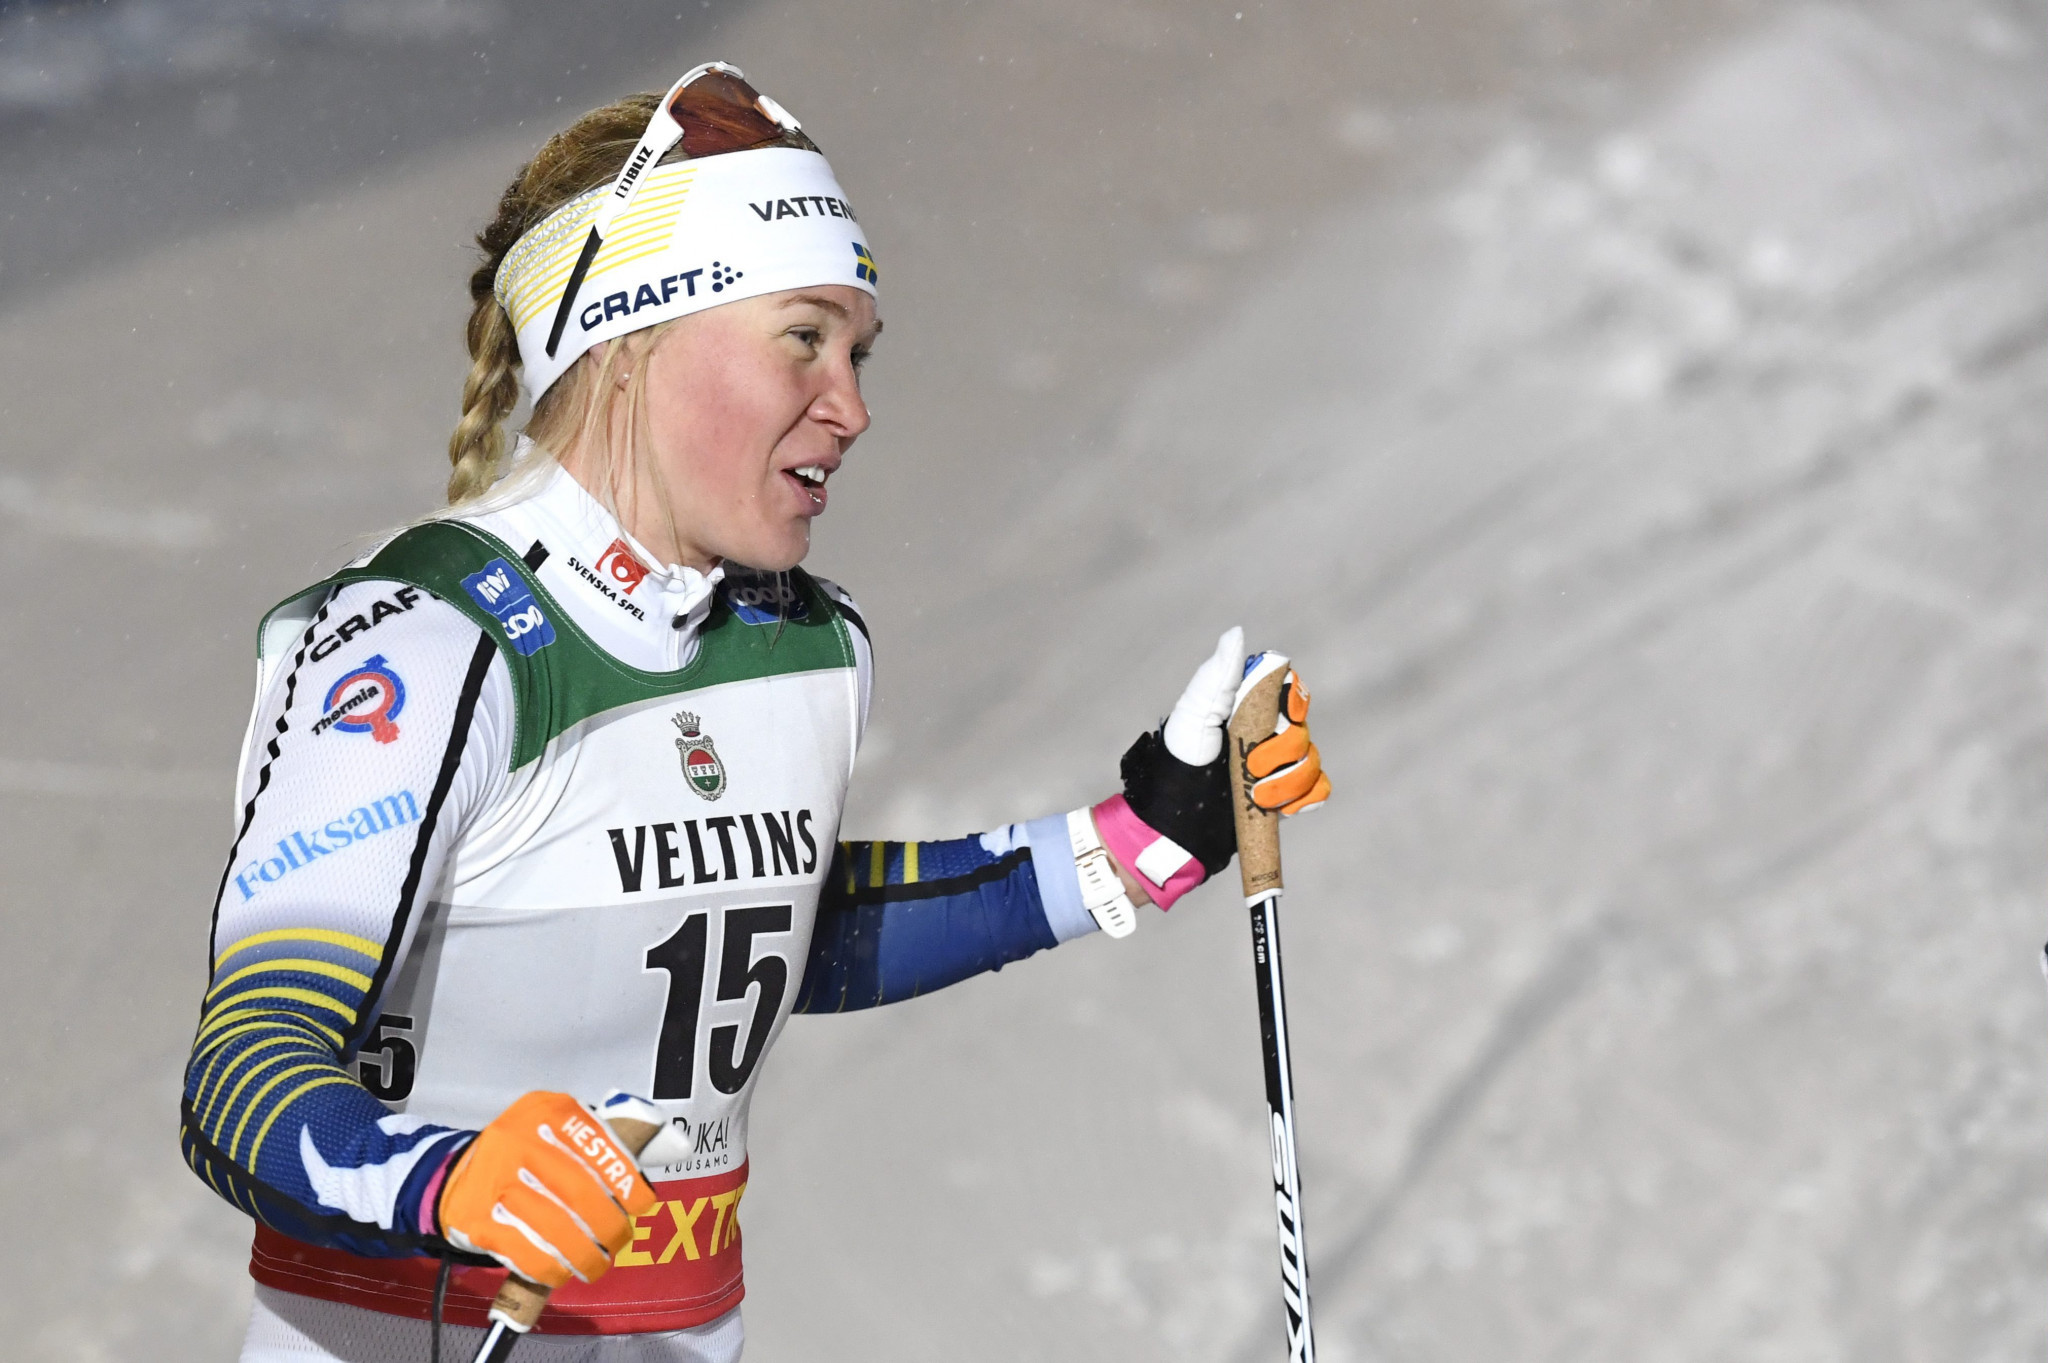 Sundling halts Nilsson hat-trick as wins FIS Cross-Country World Cup sprint in Planica